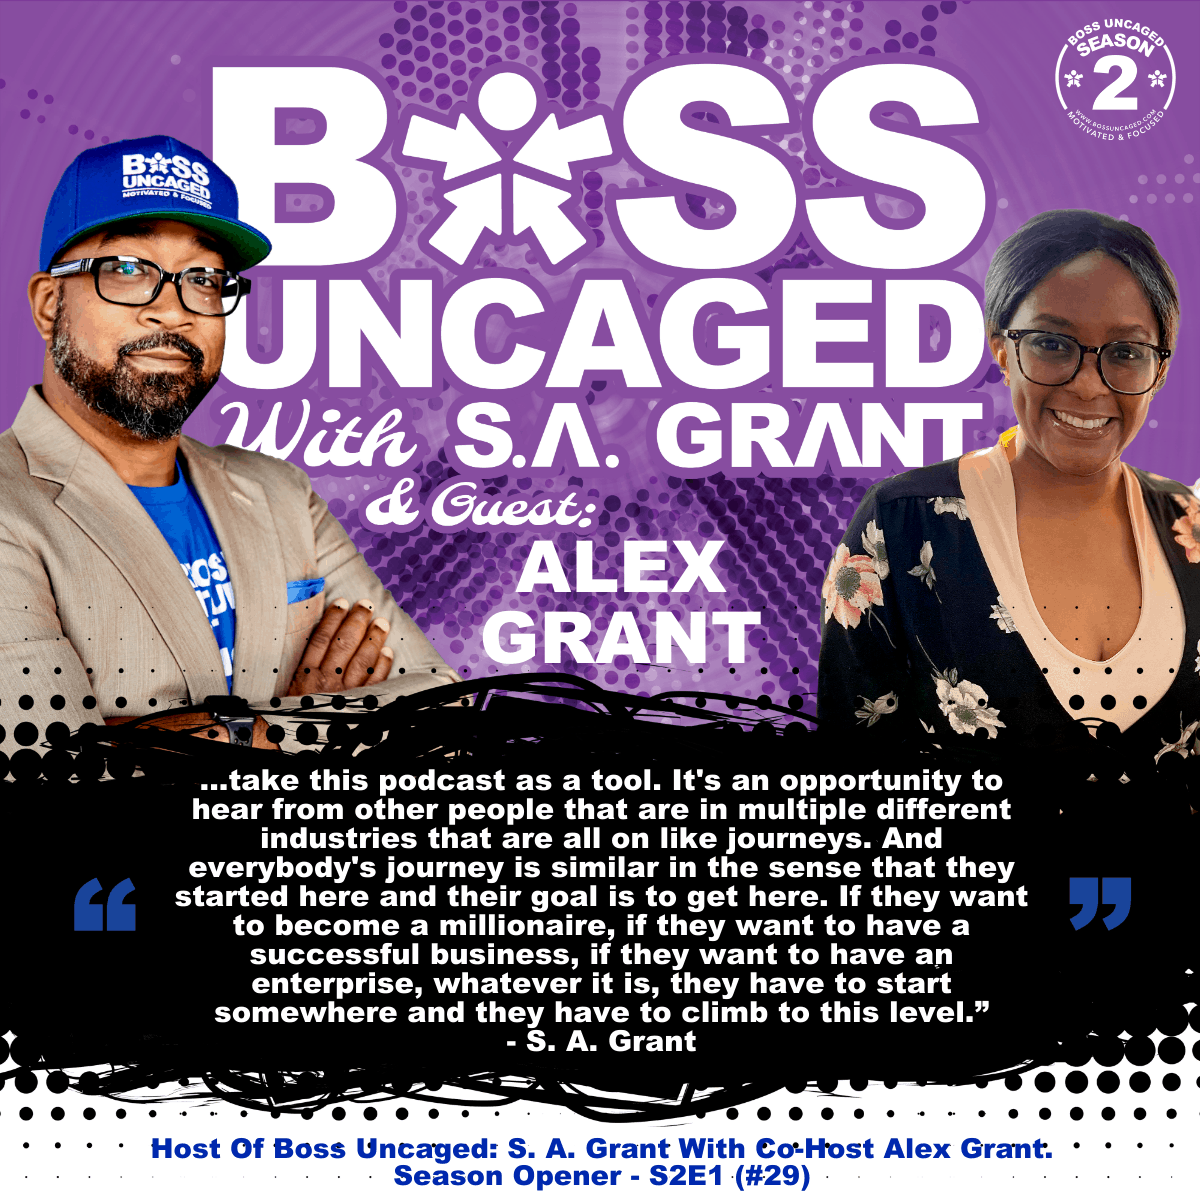 Host Of Boss Uncaged: S. A. Grant With Co-Host Alex Grant. Season Opener - S2E1 (#29)